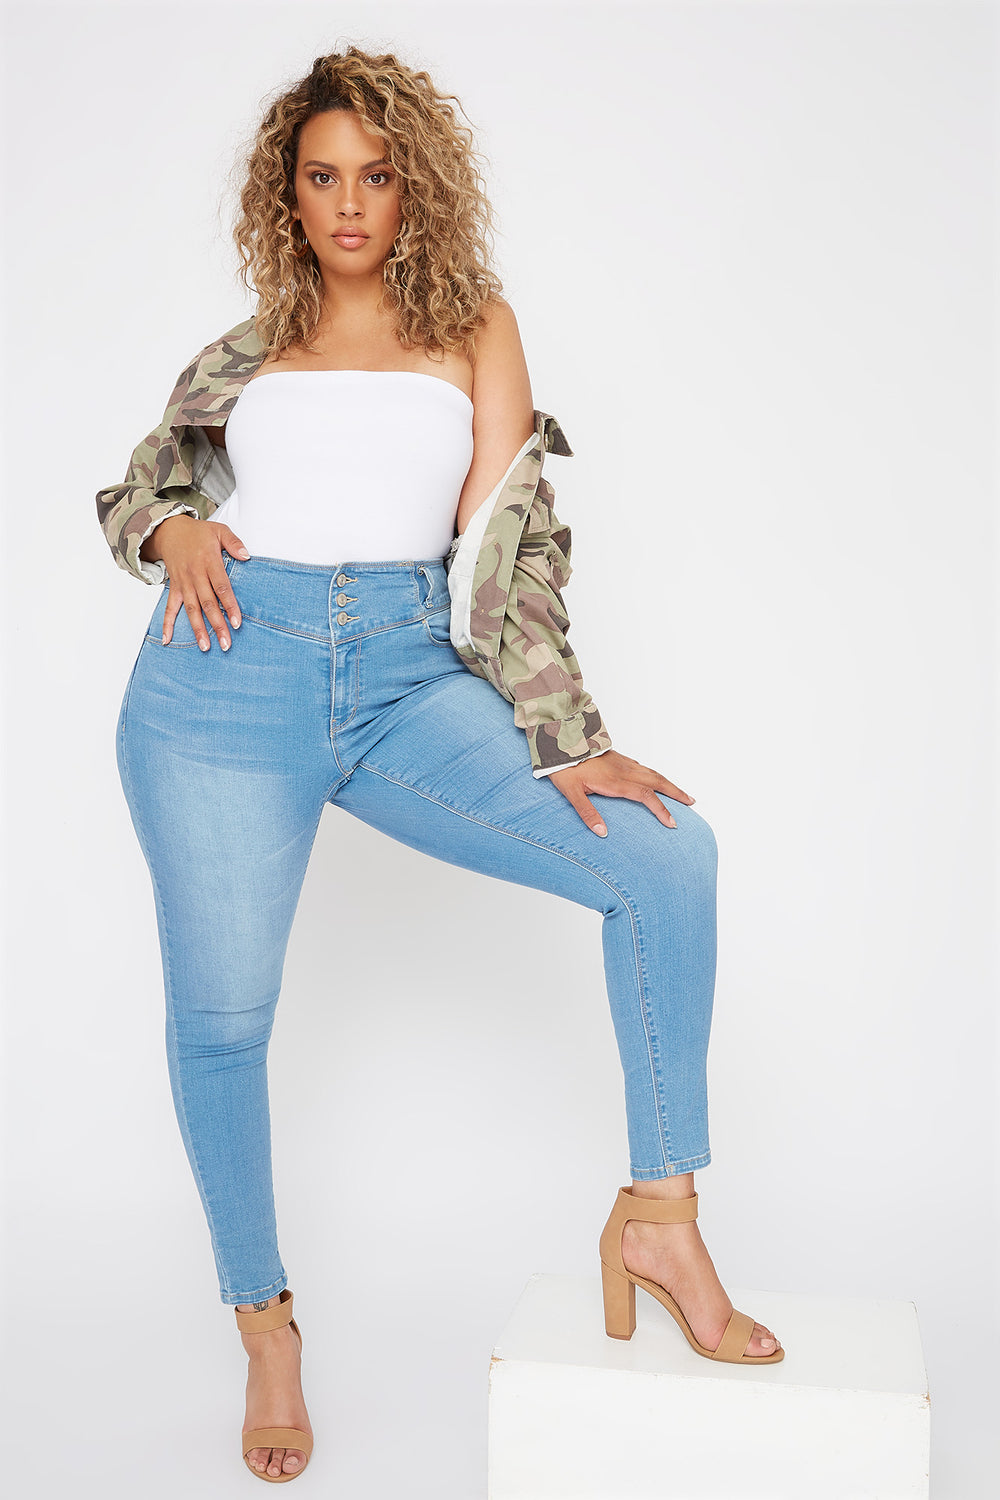 Plus Size Butt, I Love You 3-Tier High-Rise Push-Up Skinny Jean Light Denim Blue